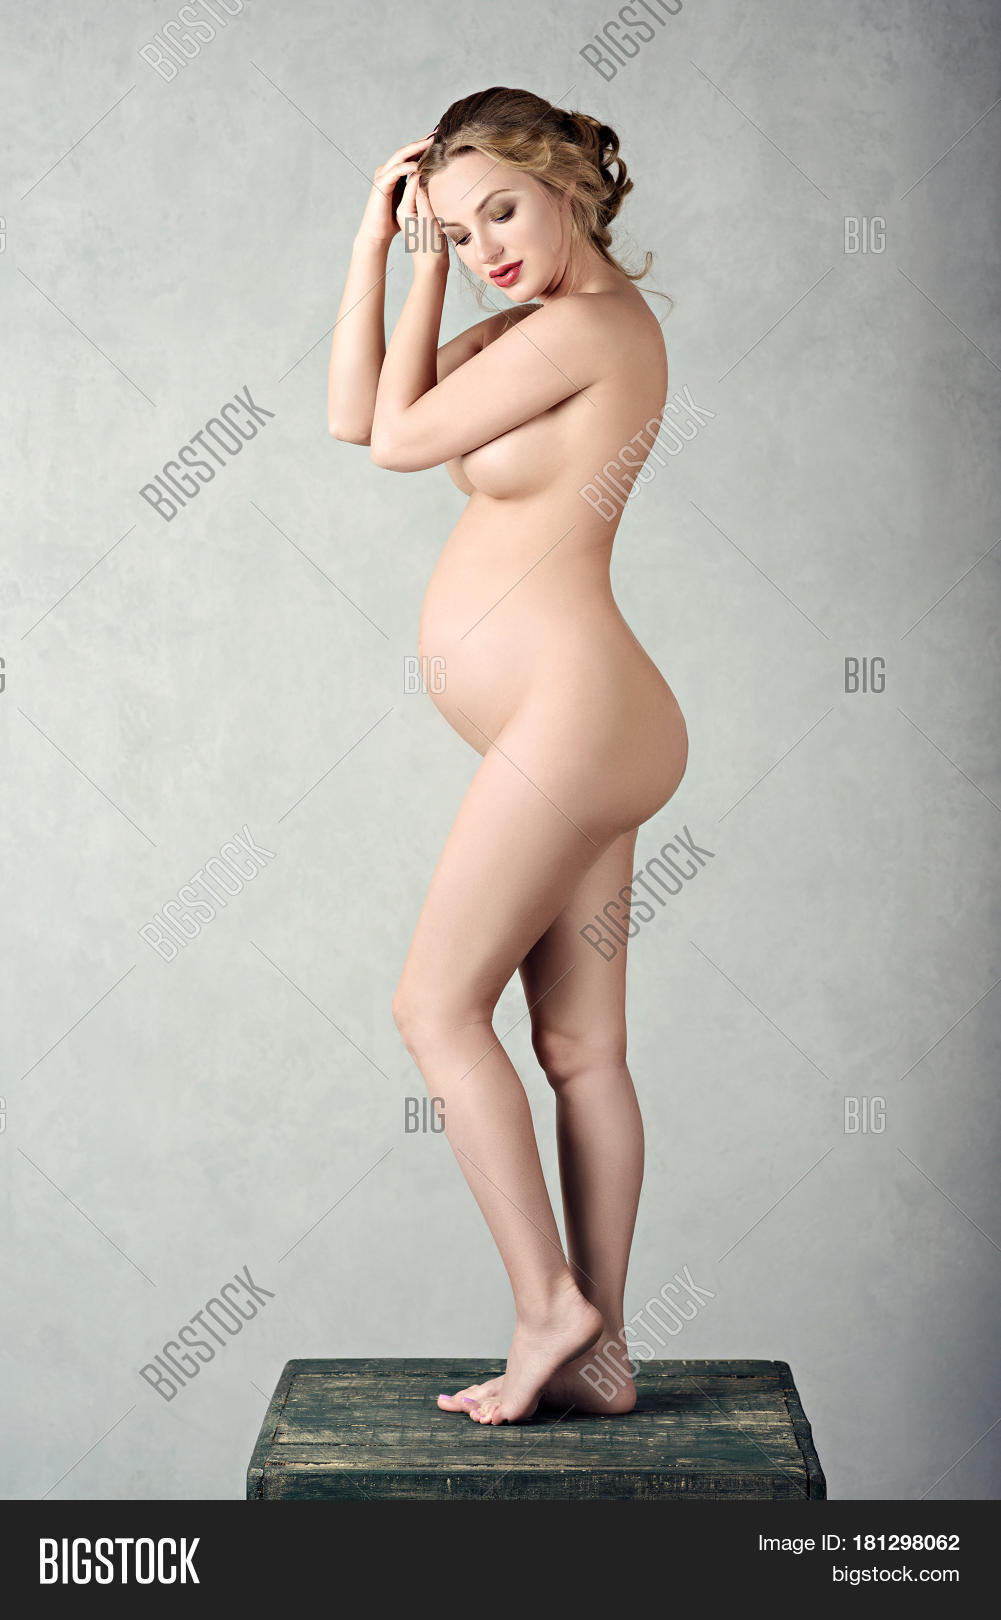 Women who are pregnant posing naked